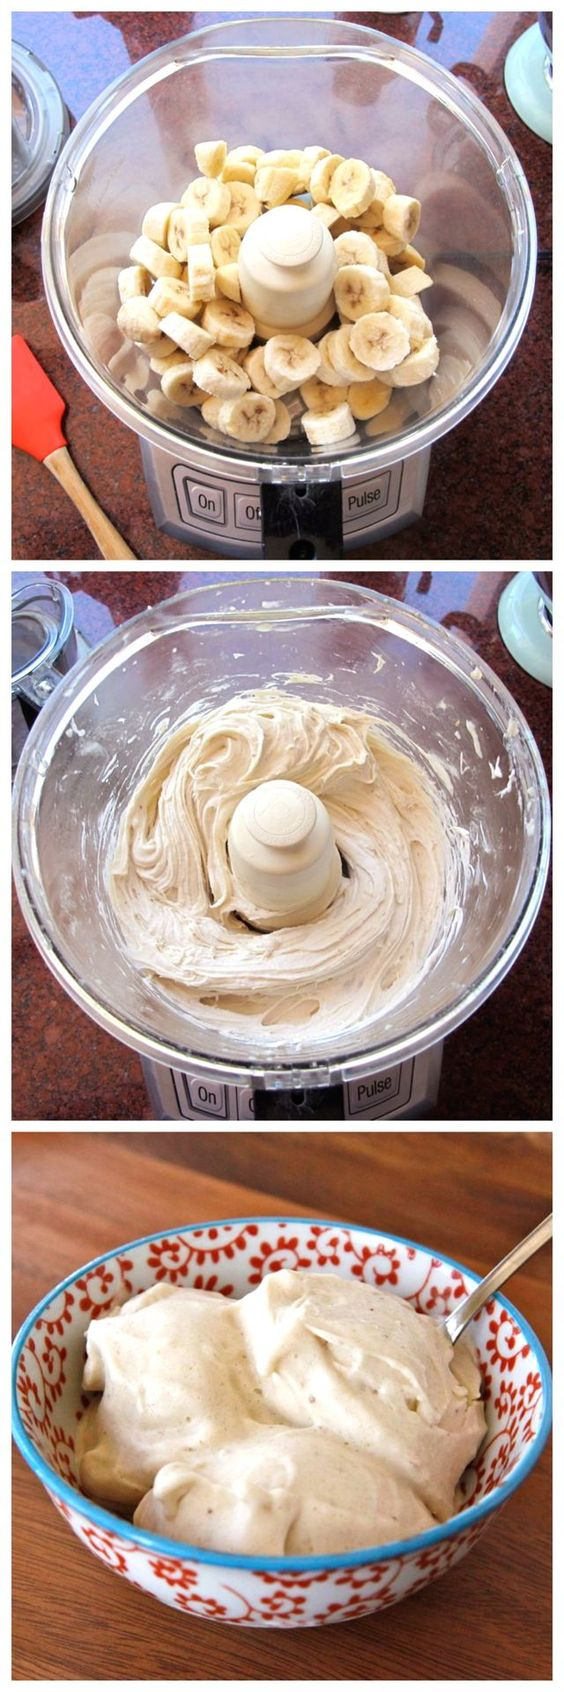 "Banana Soft Serve - Recipe for One-Ingredient Food Processor Banana ""Ice Cream"" - Creamy All Natural Dairy Free Dessert"